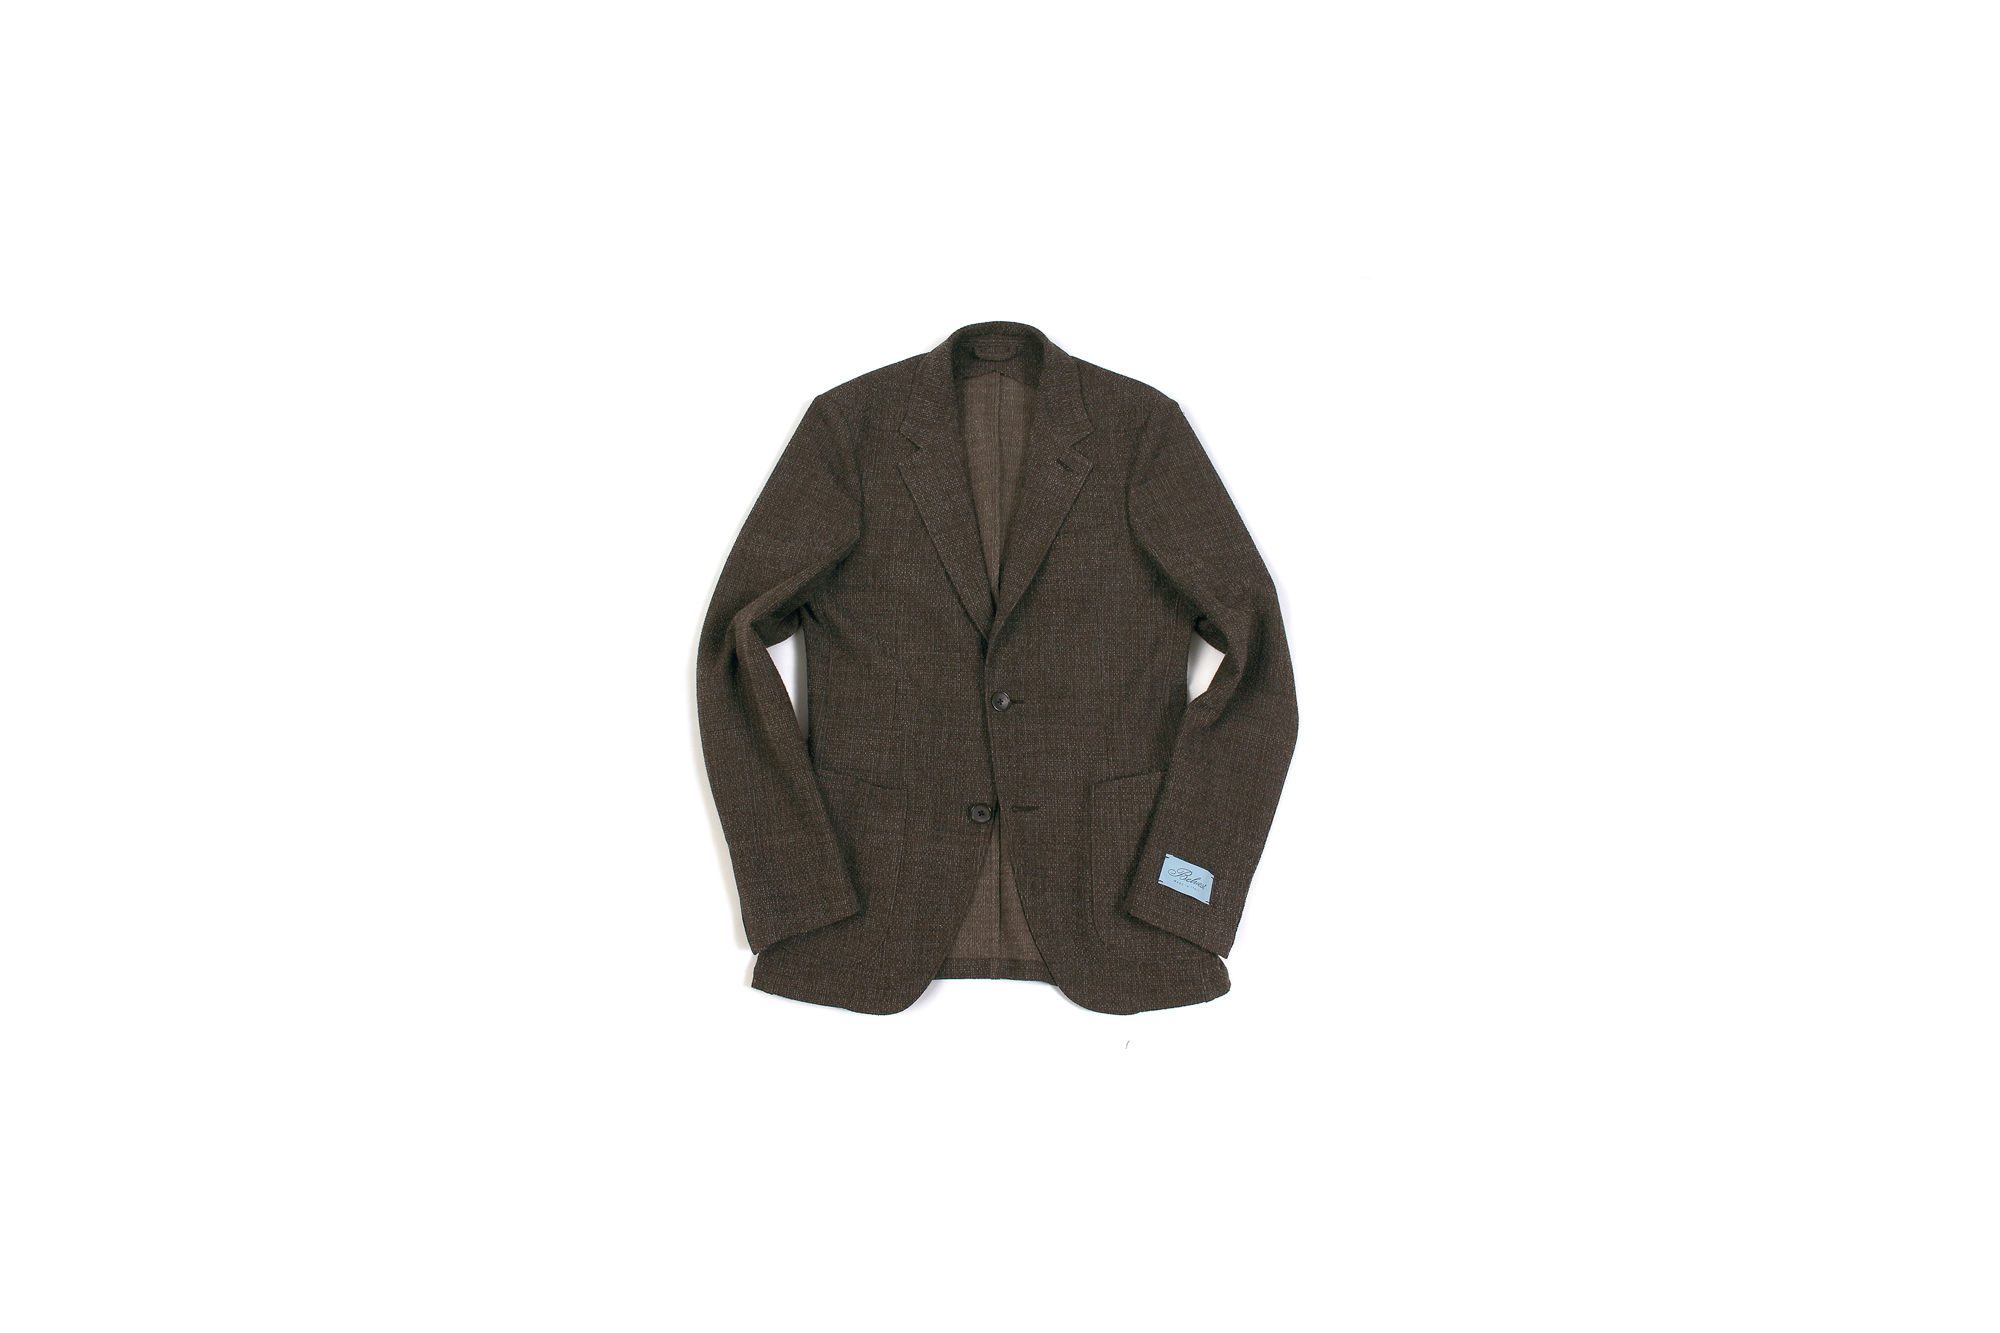 BELVEST (ベルベスト) CAPSULE SINGLE BREASTE JACKET 2PATCH WOOL SLAB COMFORT ストレッチ サマーウールスラブ ジャケットBROWN (ブラウン) Made in italy (イタリア製) 2020 春夏新作 愛知 名古屋 altoediritto アルトエデリット